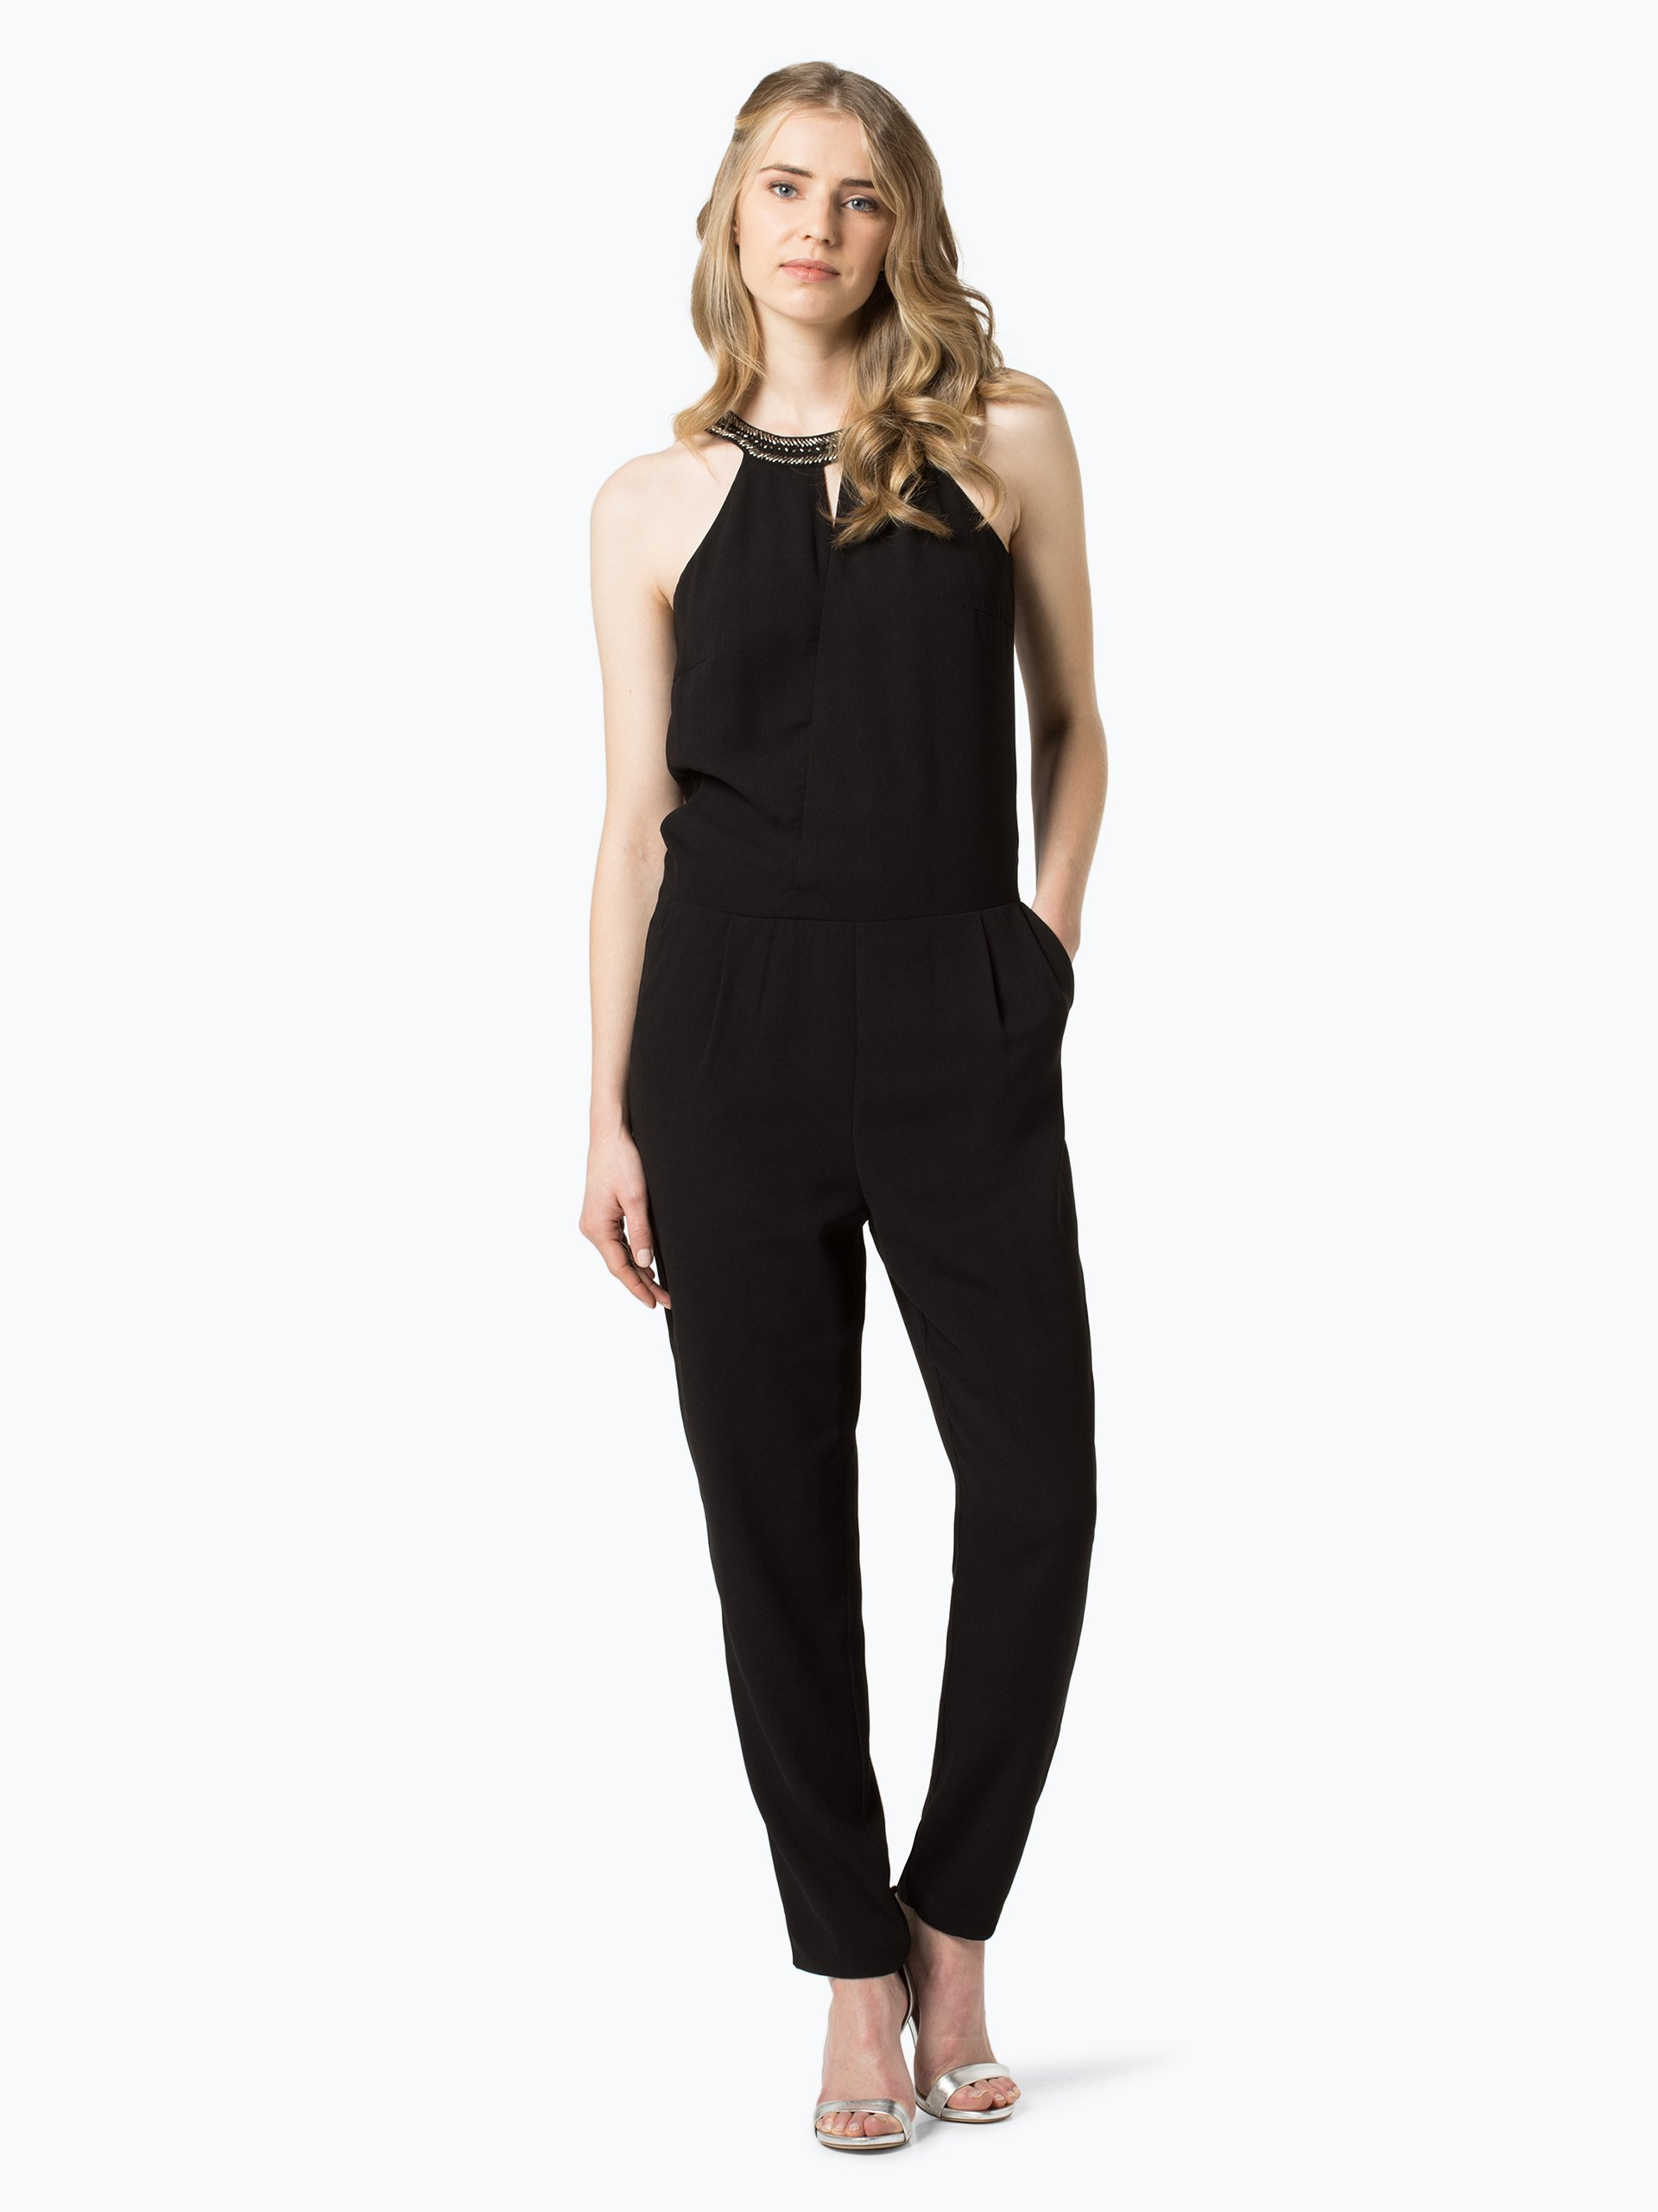 esprit collection damen jumpsuit schwarz uni online kaufen vangraaf com. Black Bedroom Furniture Sets. Home Design Ideas